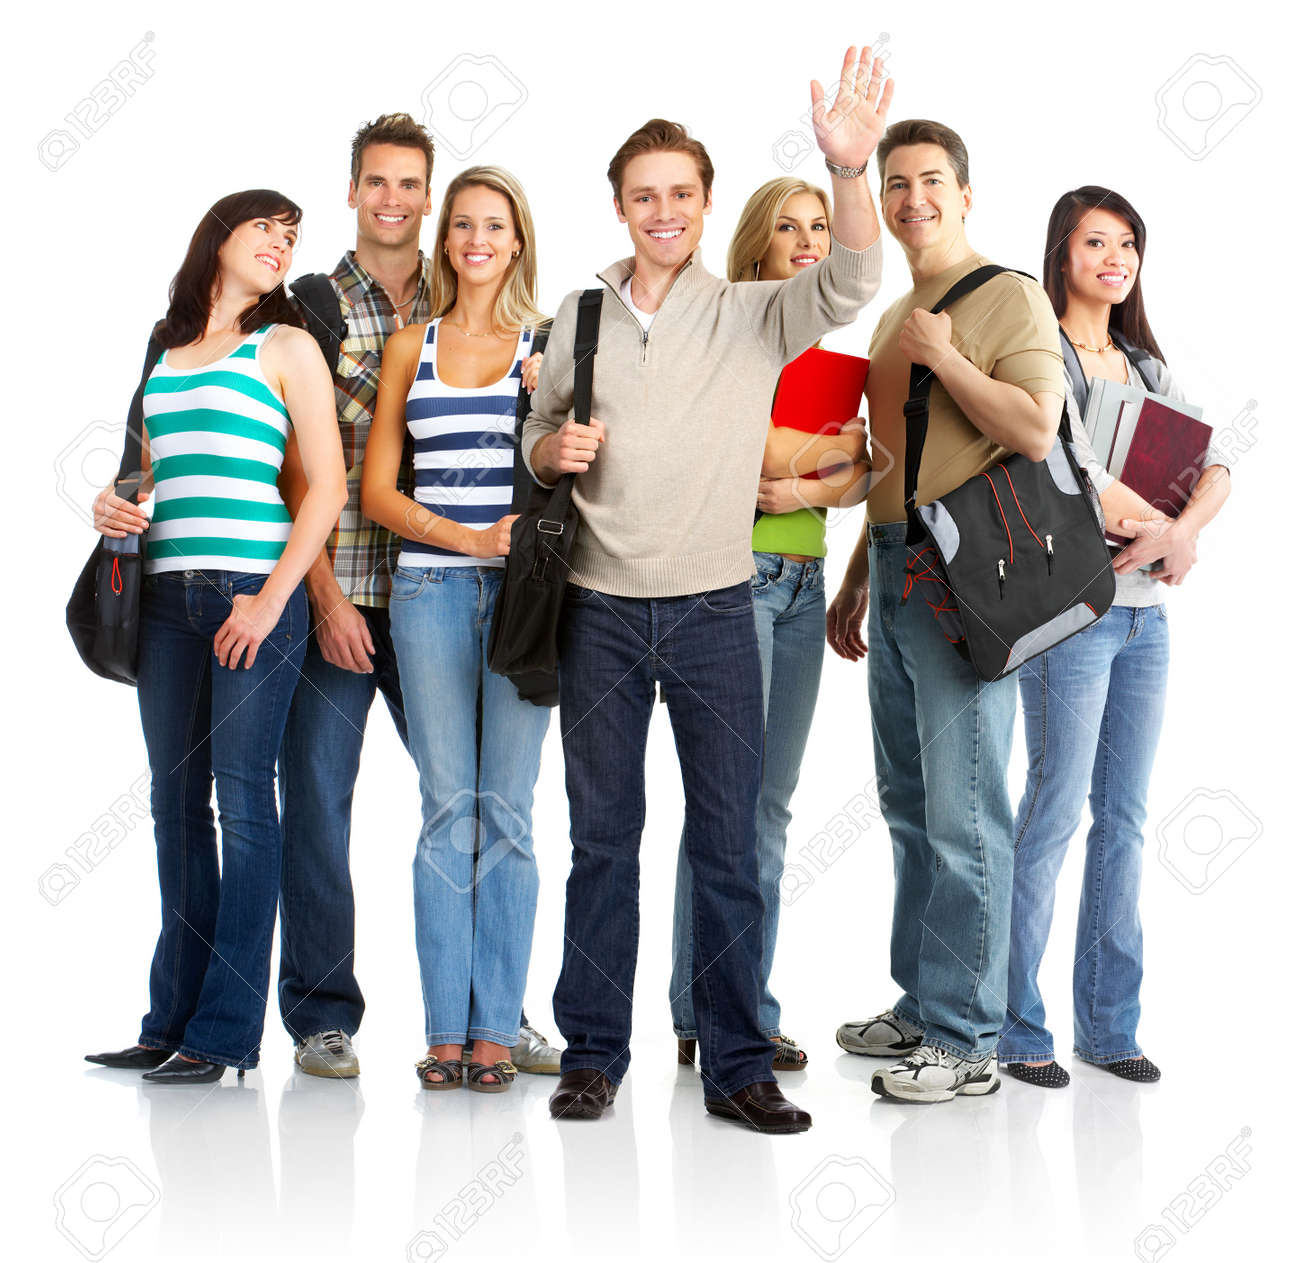 group of the young smiling  students. Over white background Stock Photo - 4903650